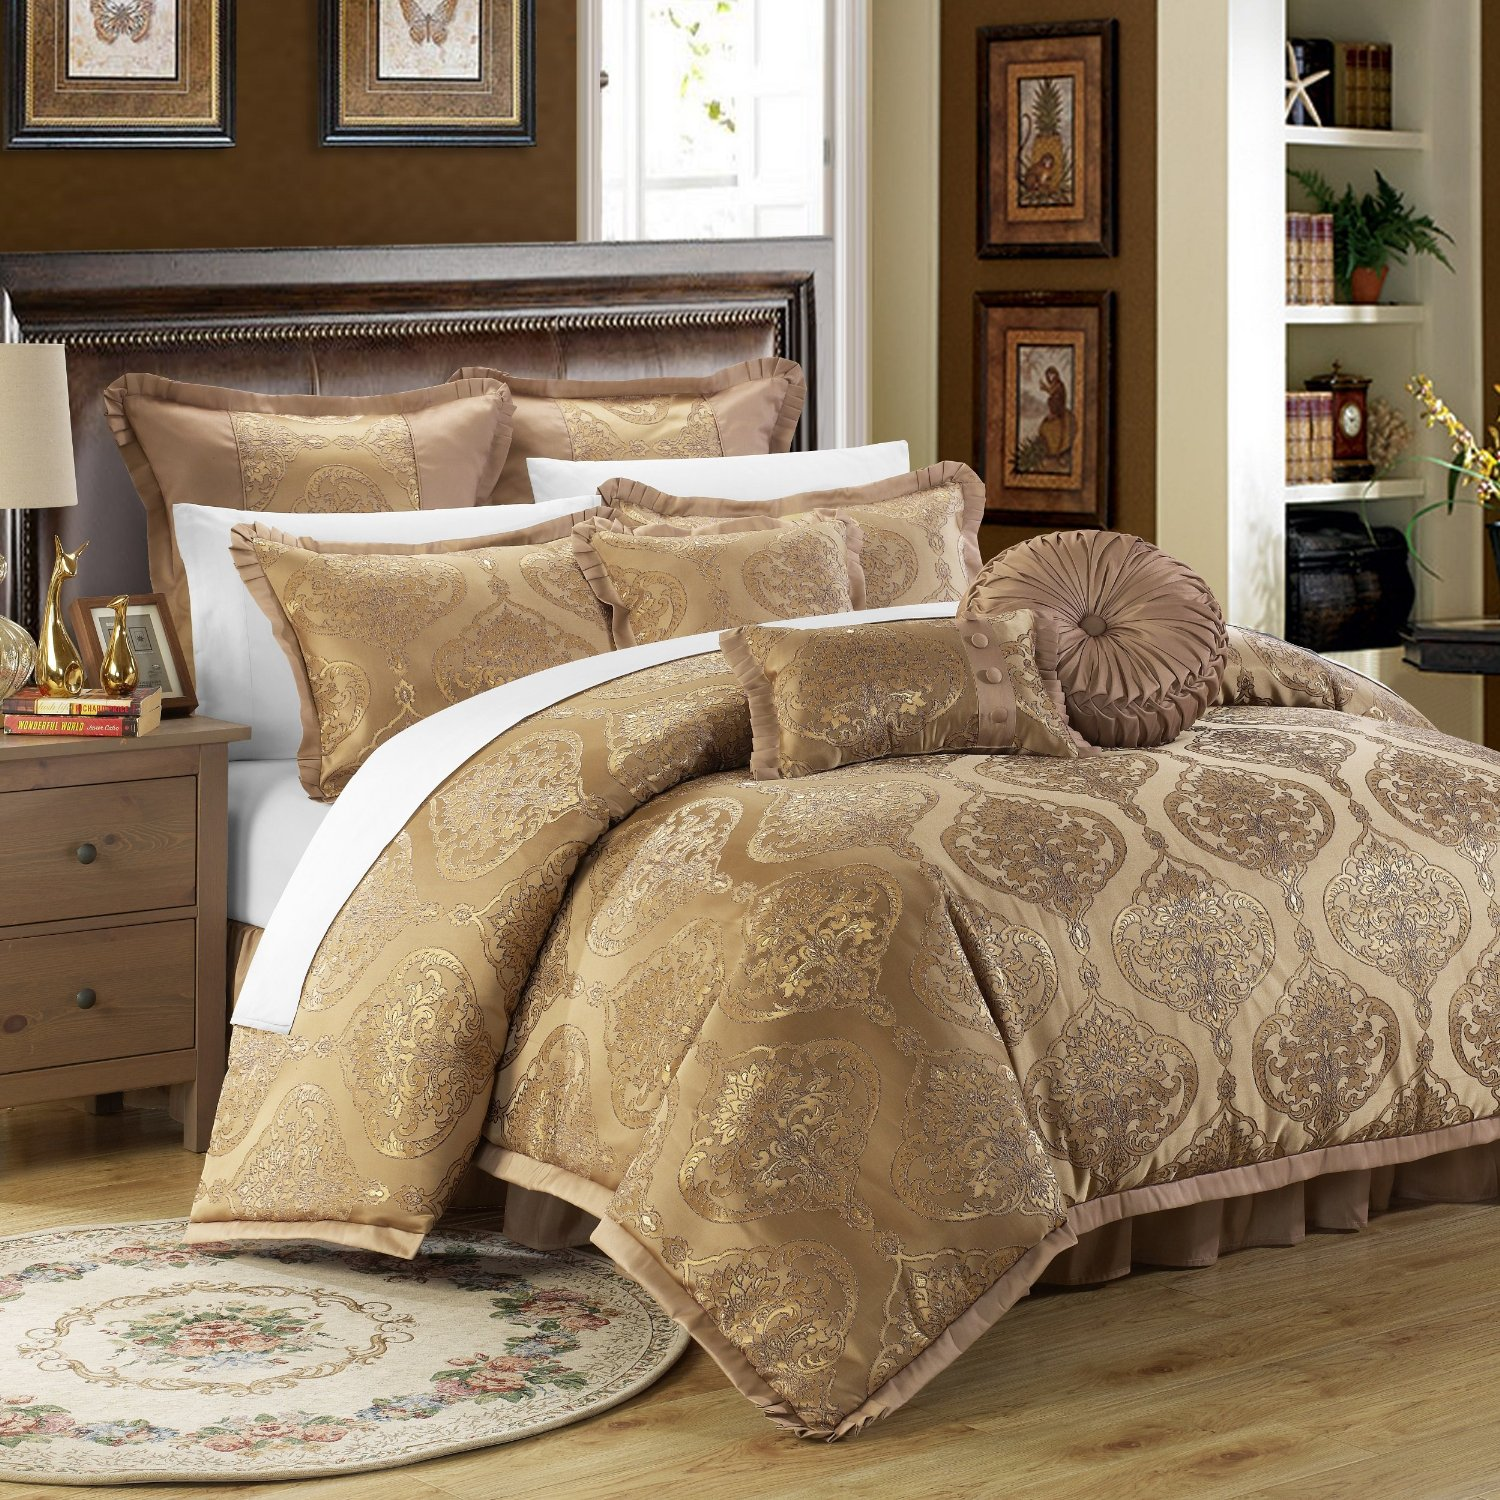 Comfy Comforter | Discount Quilts | Luxury Comforter Sets